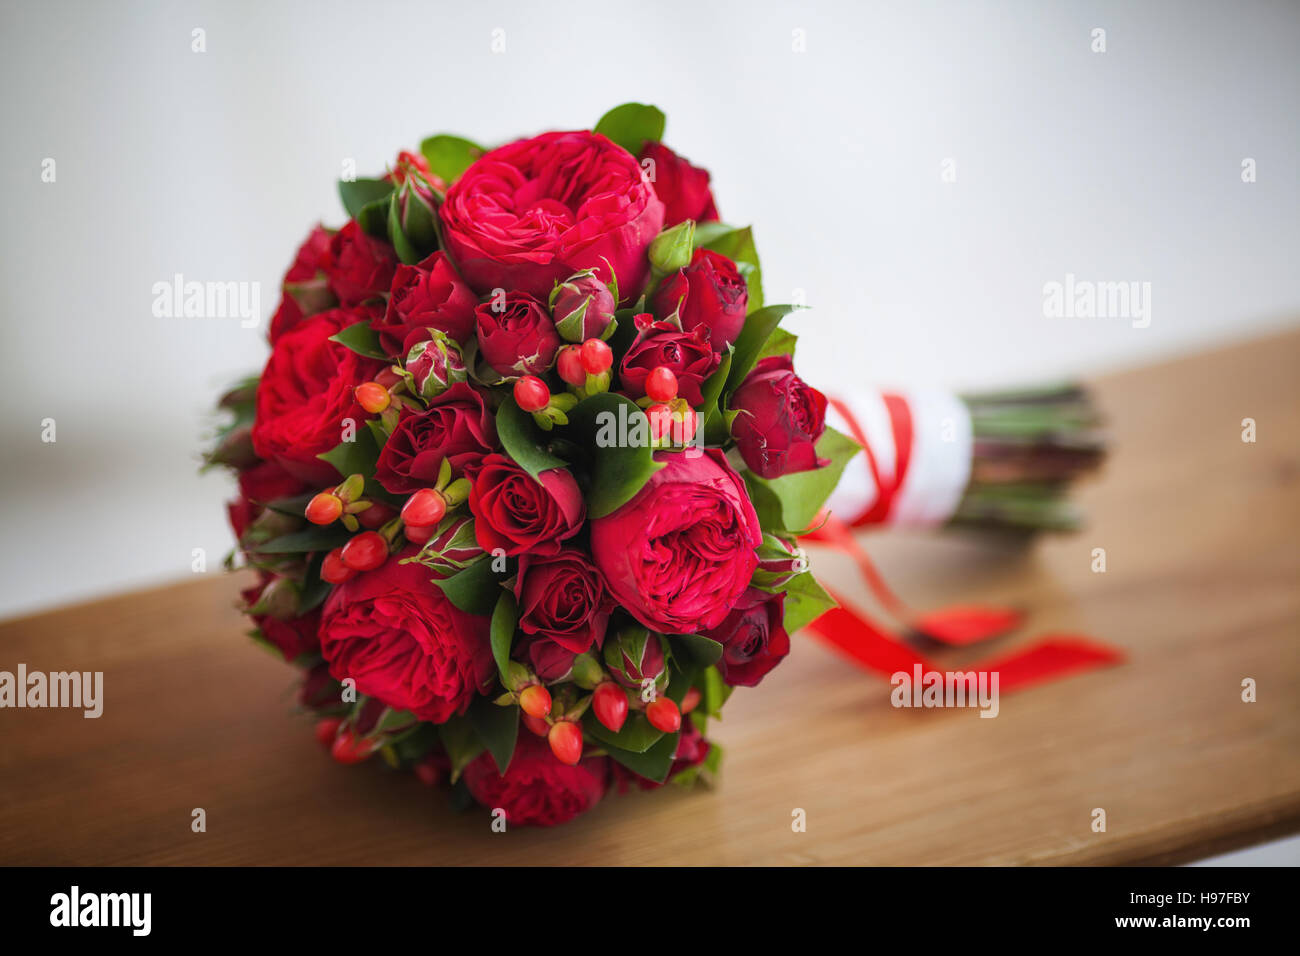 hochzeit brautstrau der grosse rote rosen stockfoto bild 126170239 alamy. Black Bedroom Furniture Sets. Home Design Ideas